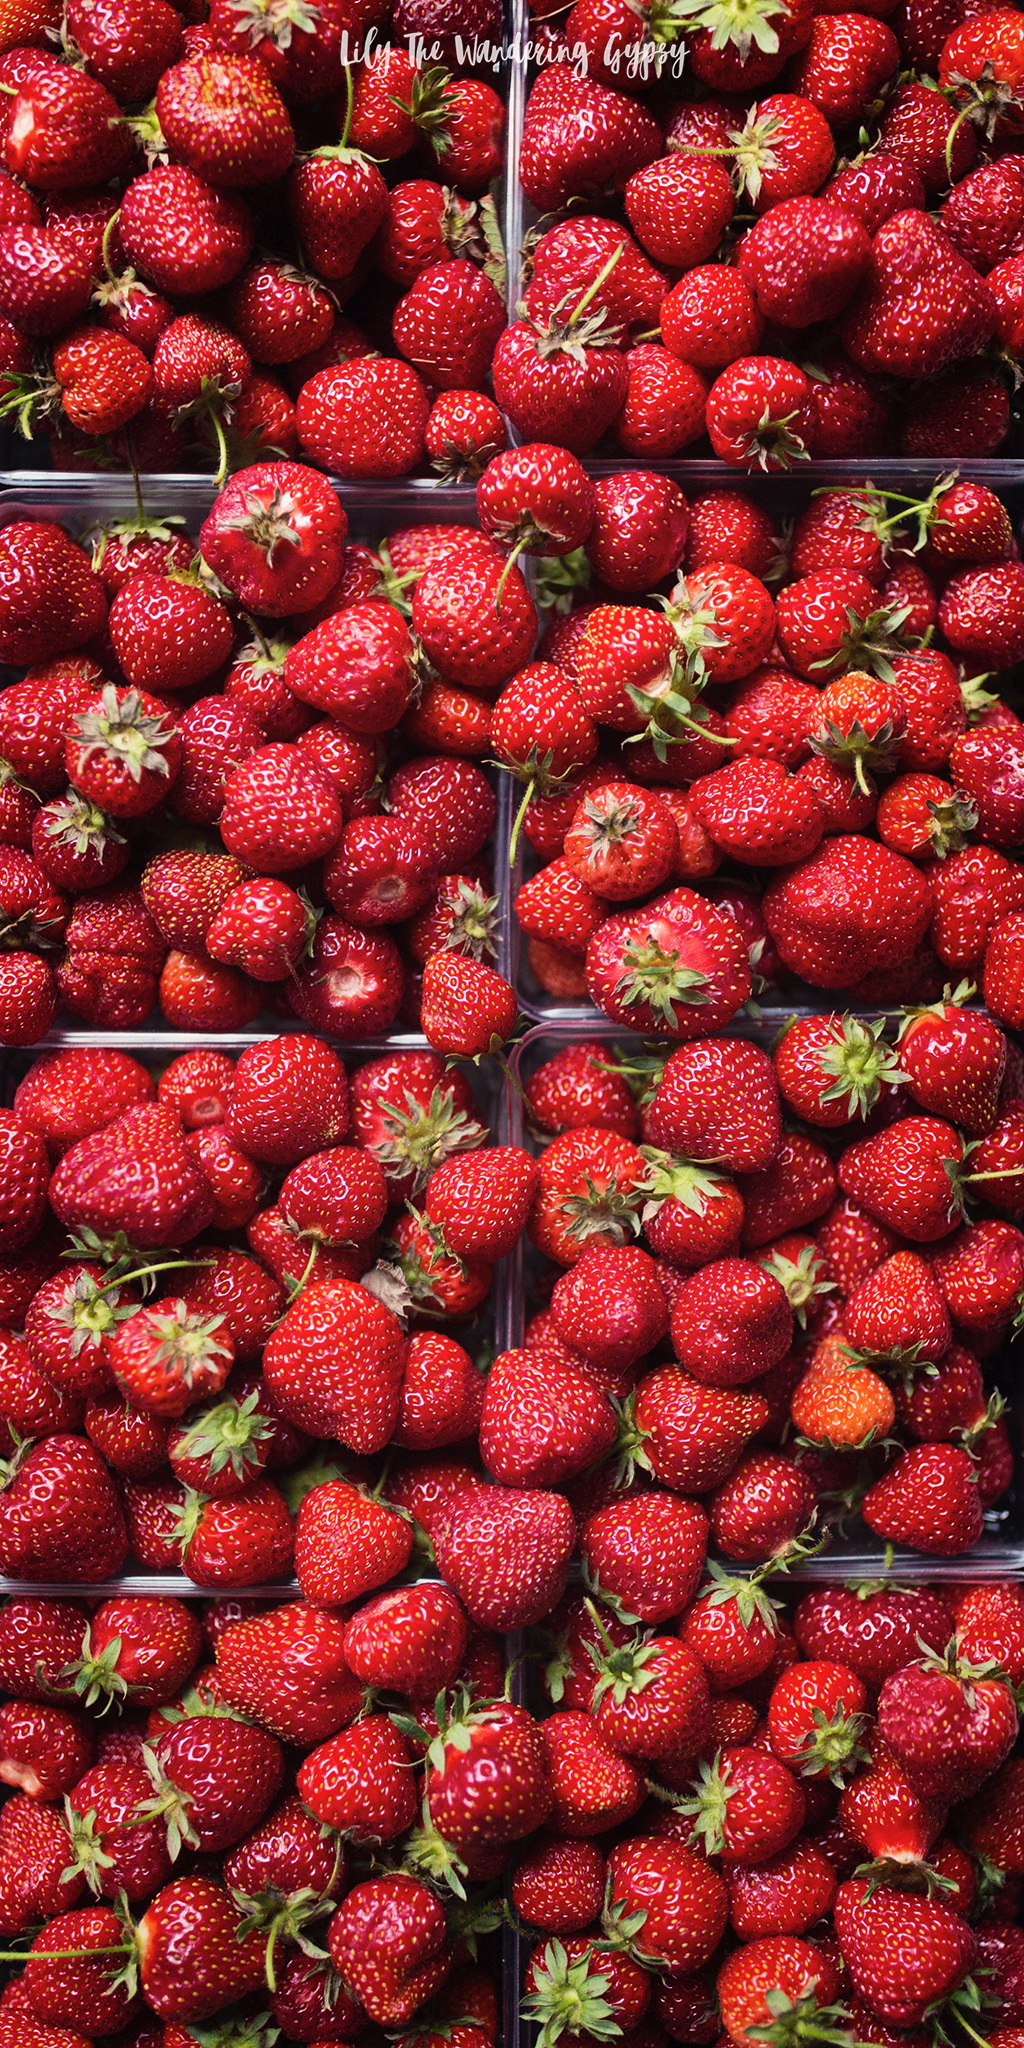 A gorgeous flat of local strawberries.